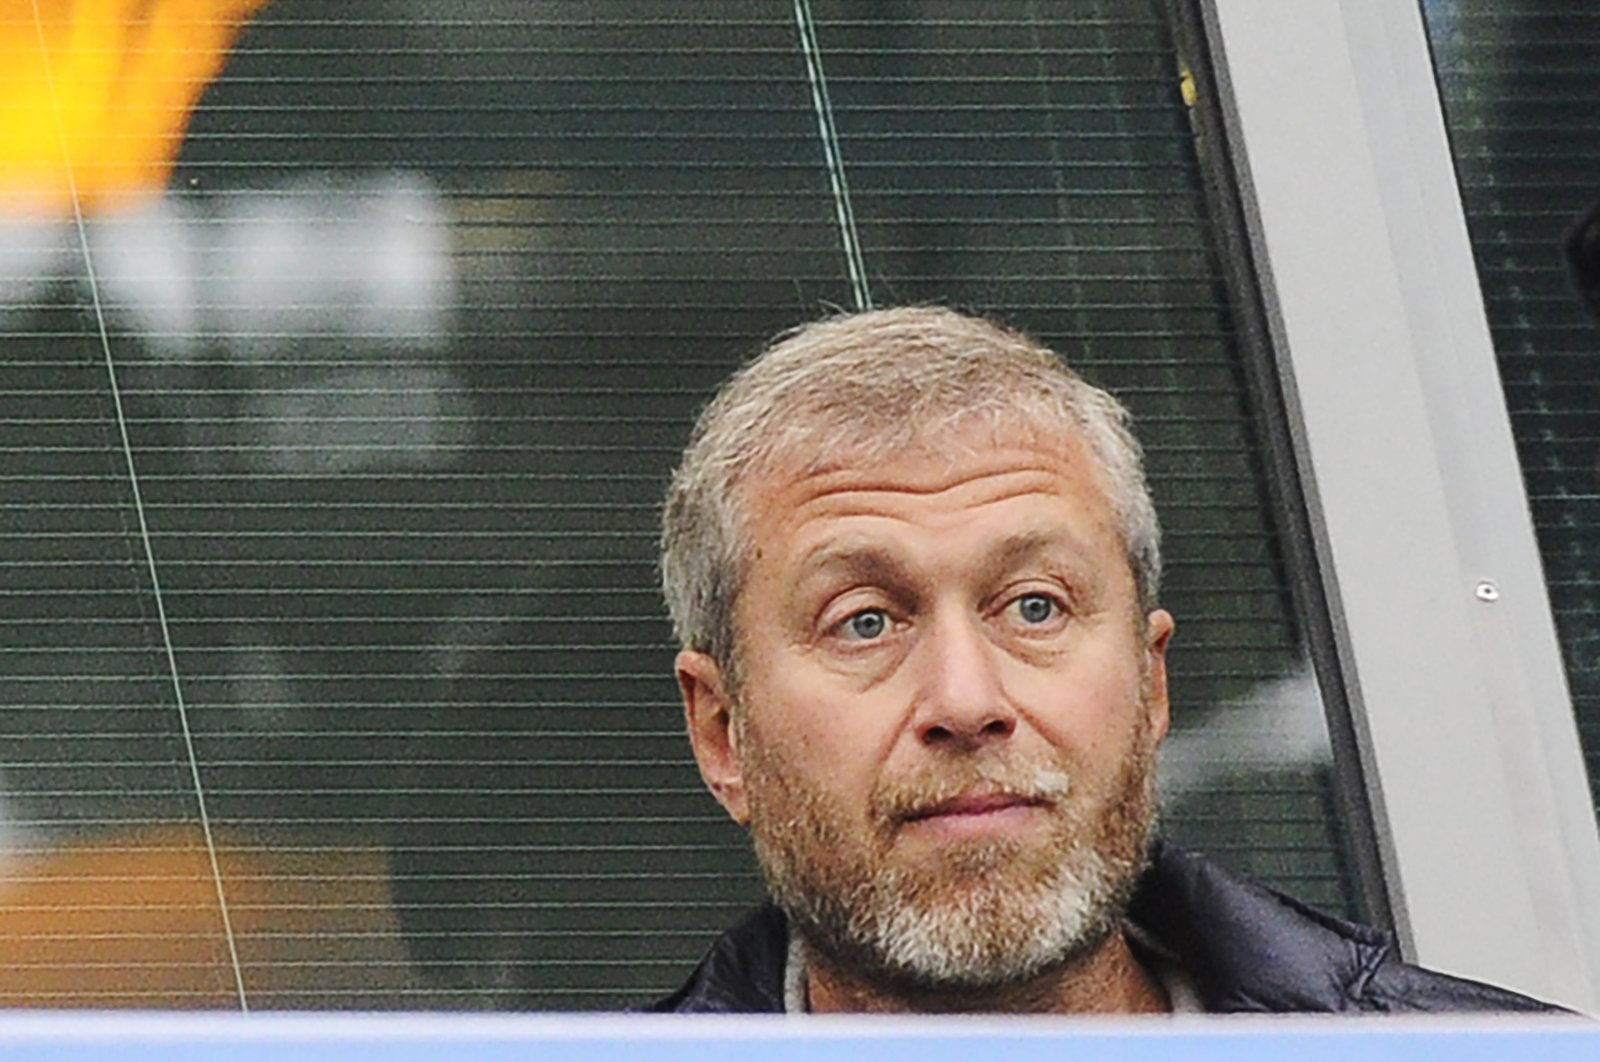 Chelsea owner Roman Abramovich watches a Premier League match between Chelsea and West Brom at the Stamford Bridge, London, Britain, Nov. 22, 2014. (EPA Photo)